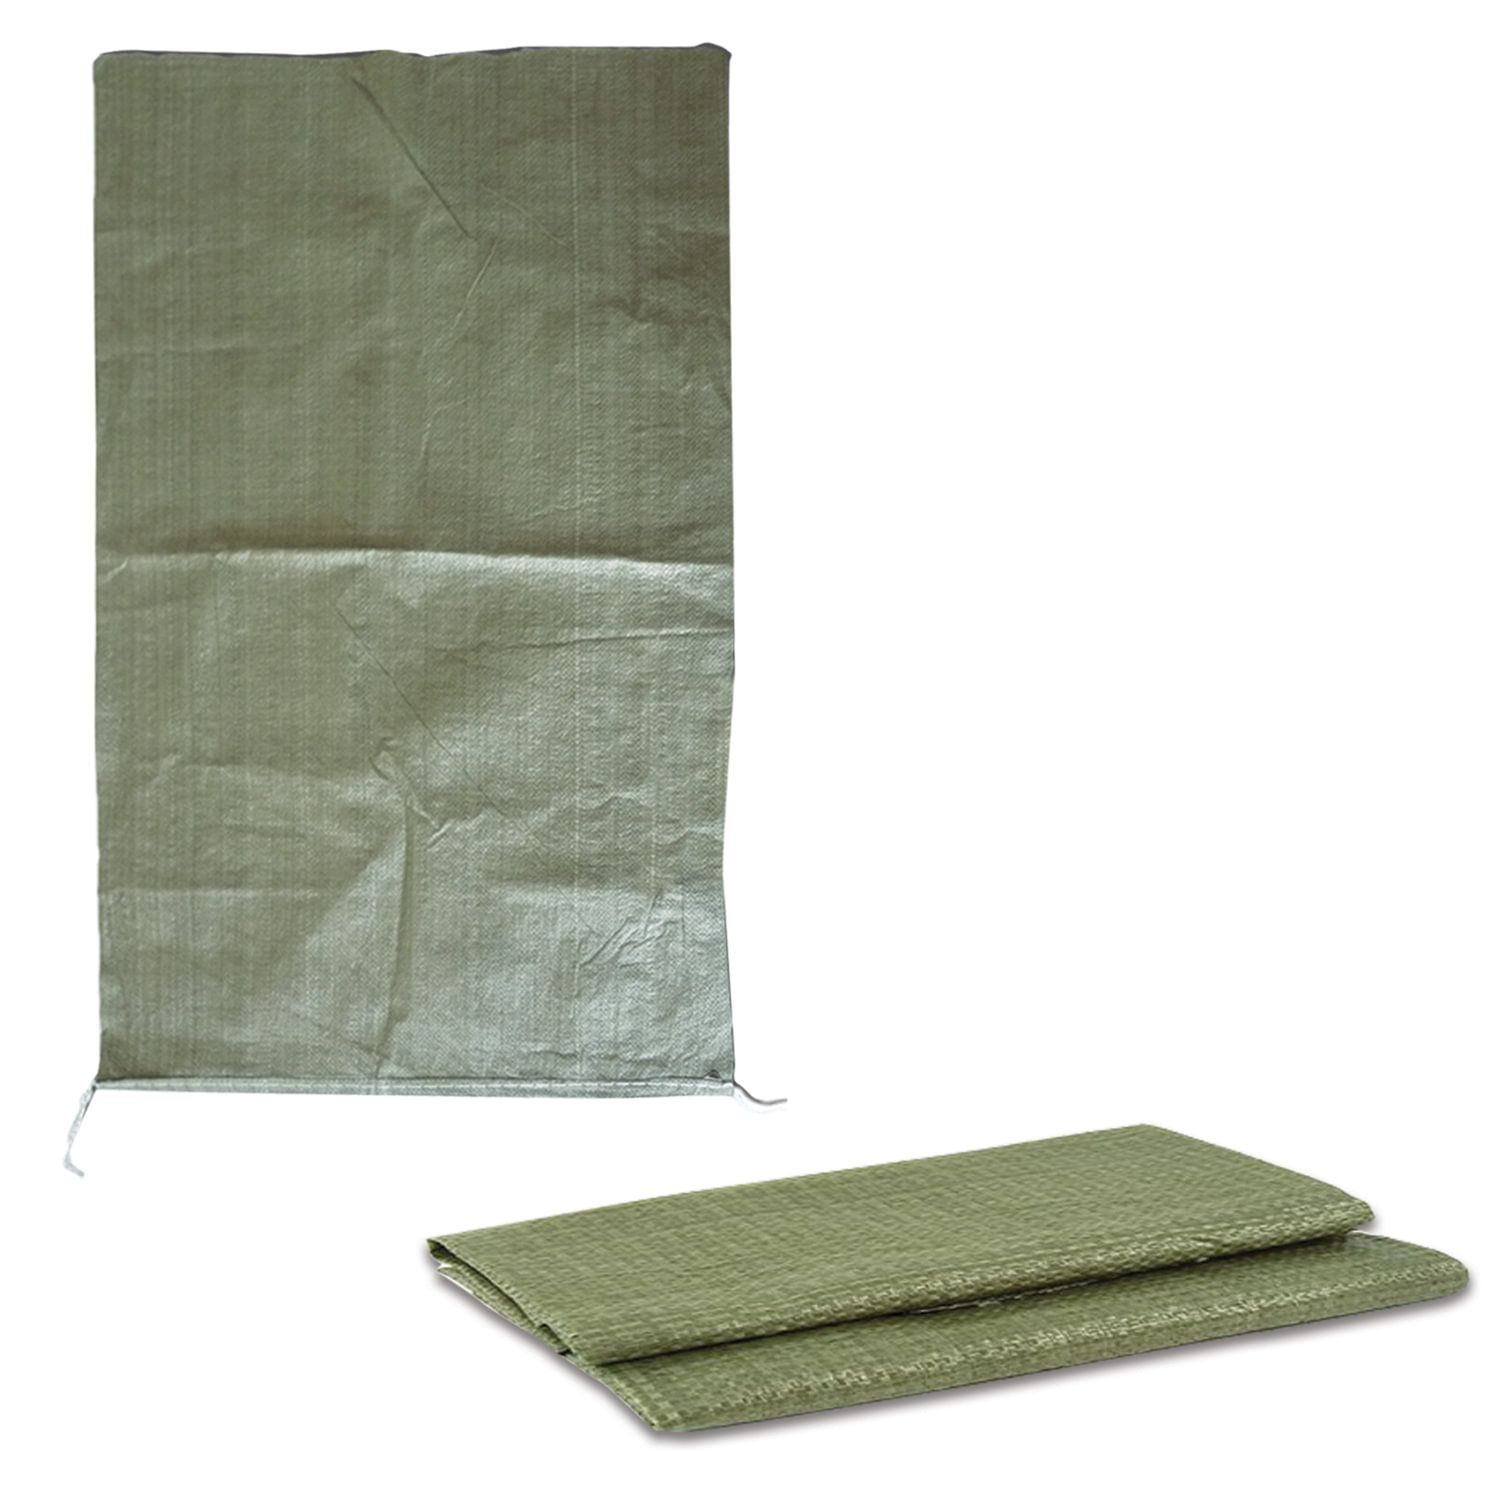 Polypropylene bags up to 50 kg, set of 100 pcs., 95x55 cm, weight 47 g, for construction / household waste, green